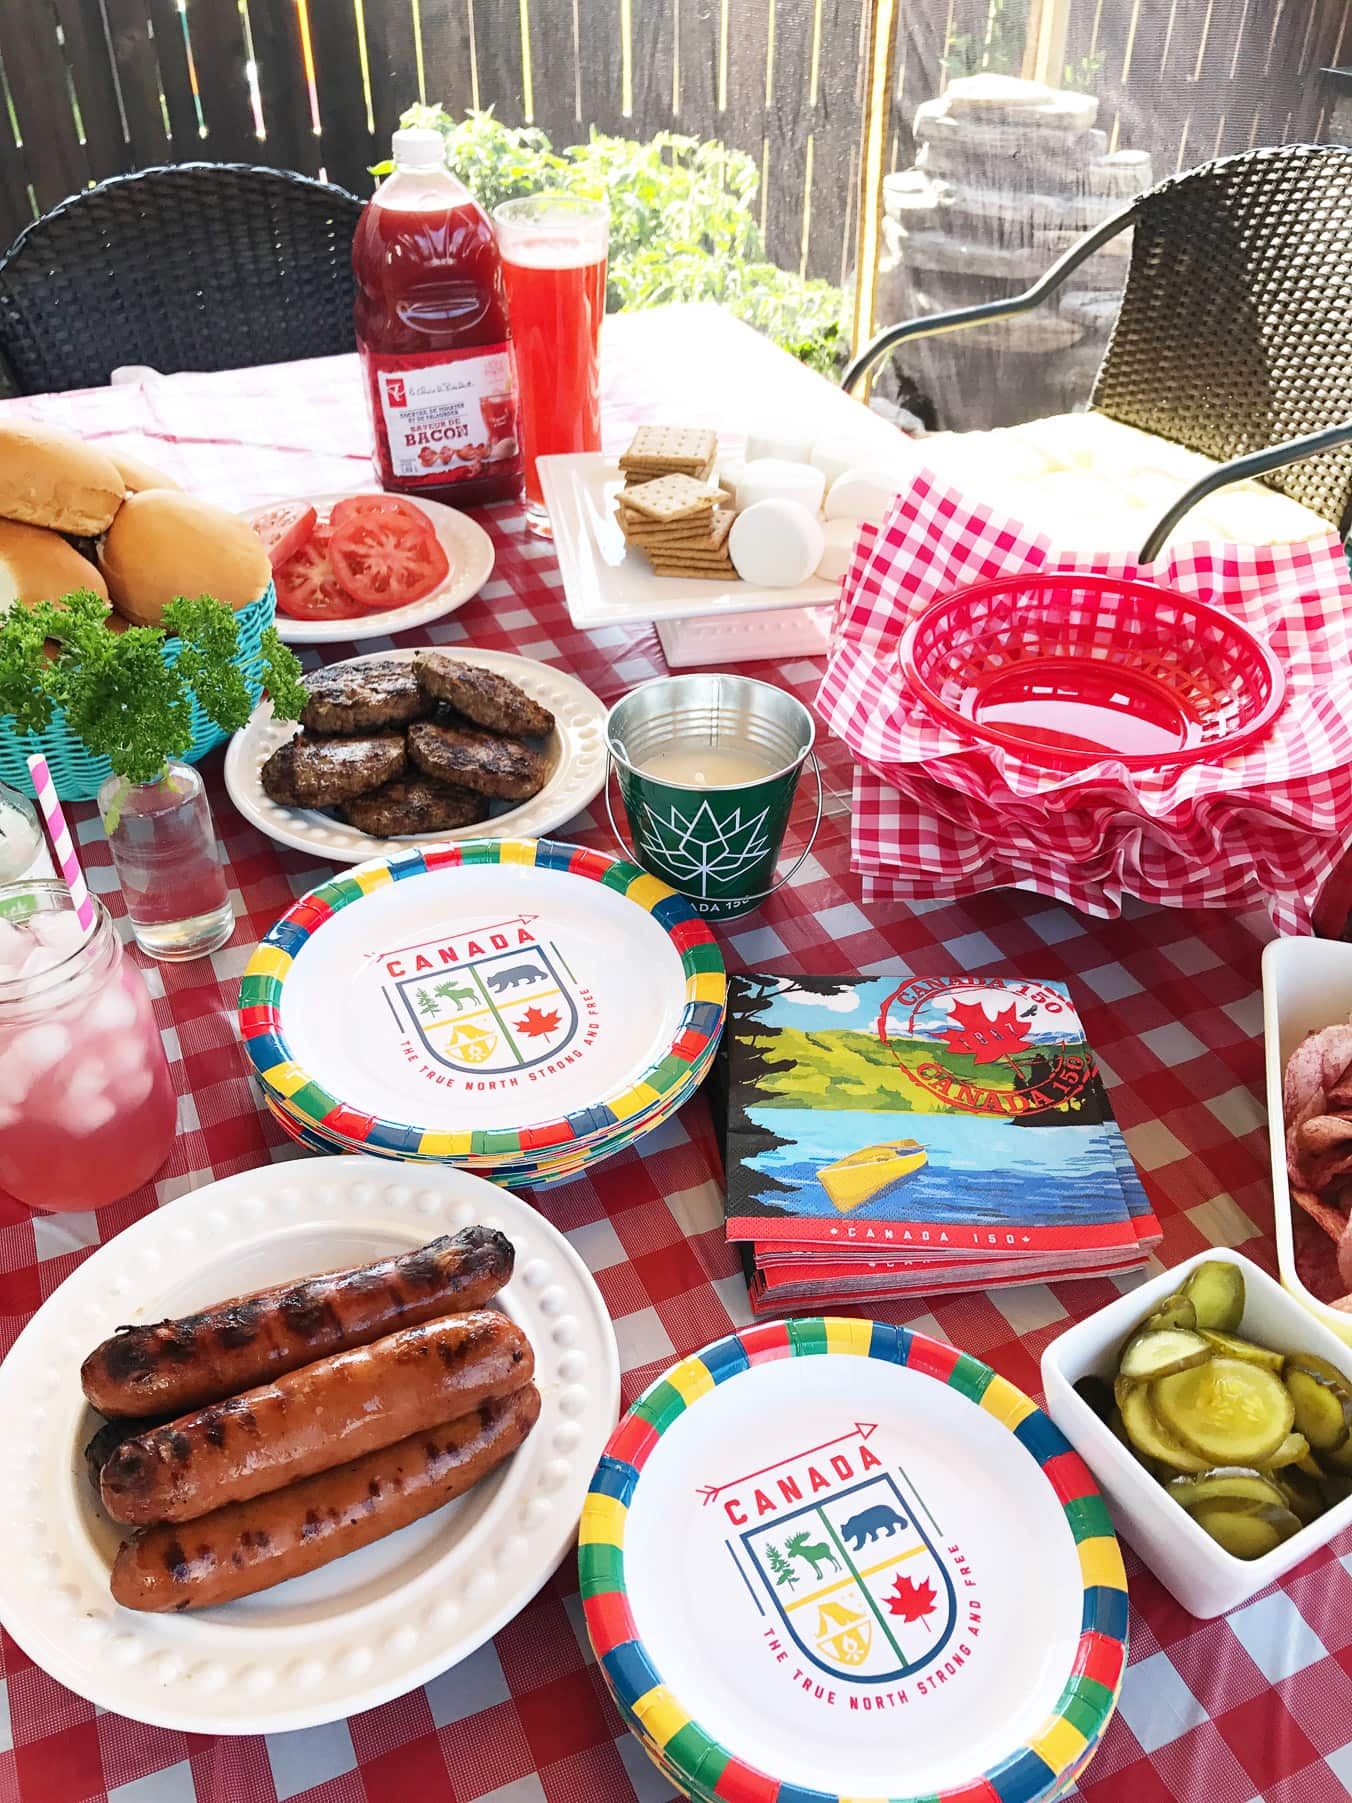 5 Tips for Hosting an Easy Summer BBQ